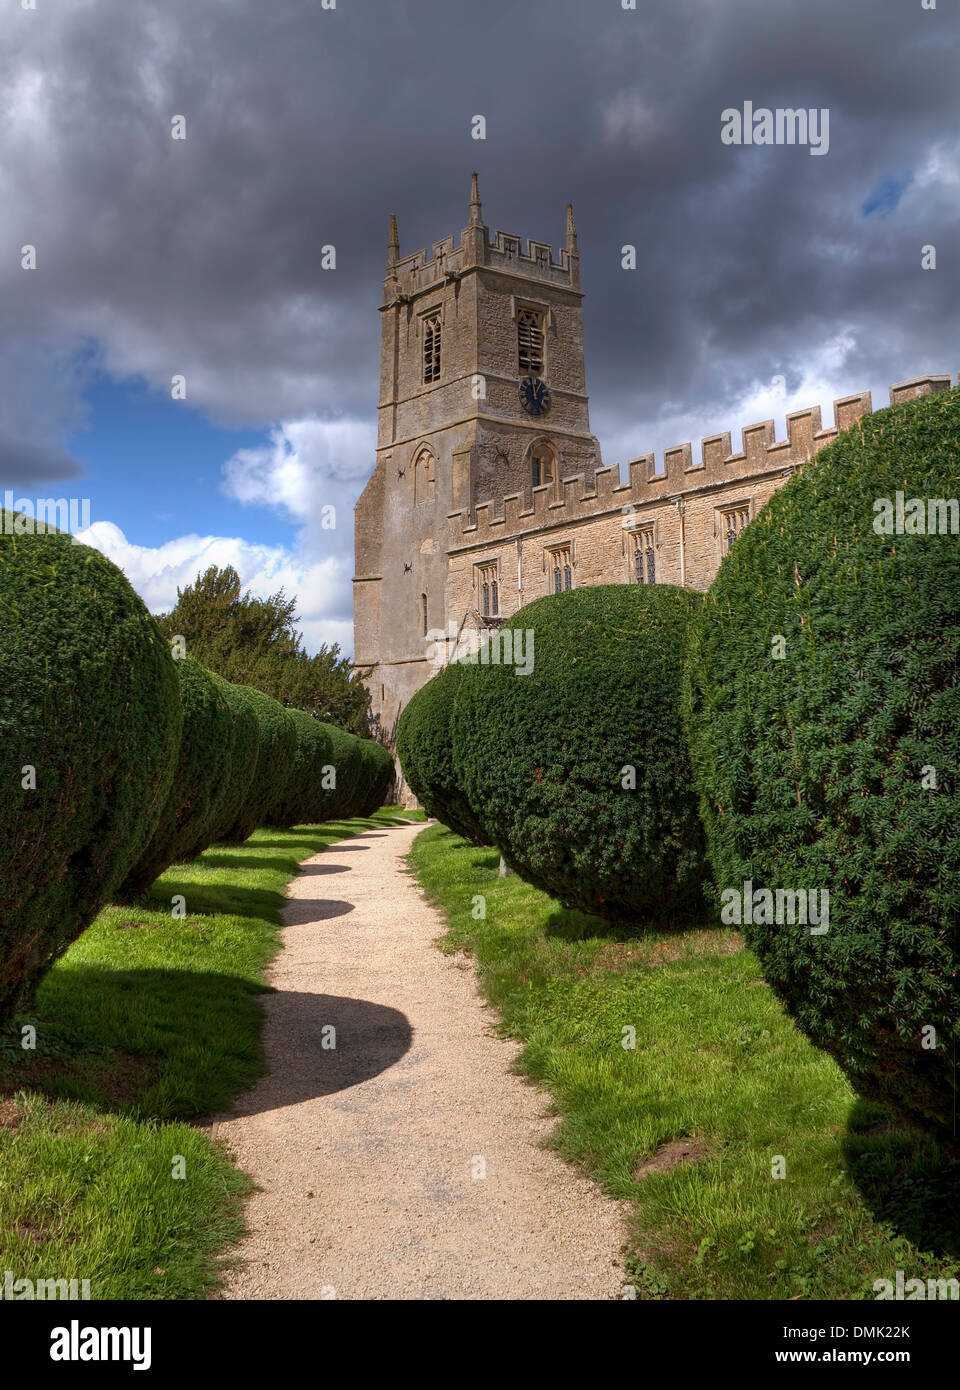 The Church of St Peter & St Paul, Long Compton, Warwickshire, England. - Stock Image